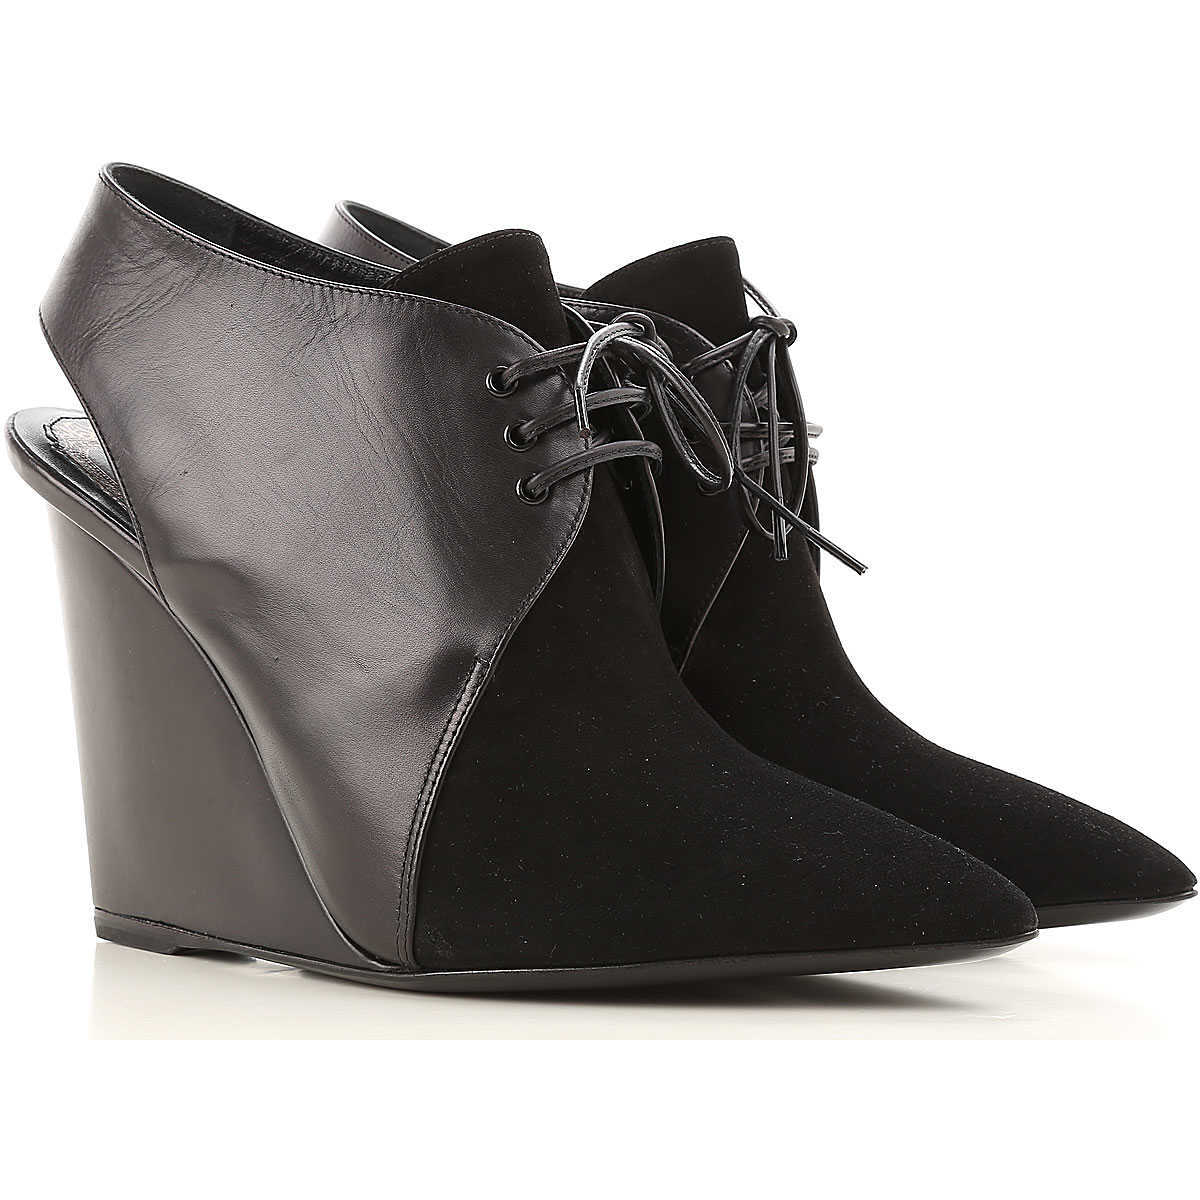 Christian Dior Wedges for Women On Sale in Outlet Black UK - GOOFASH